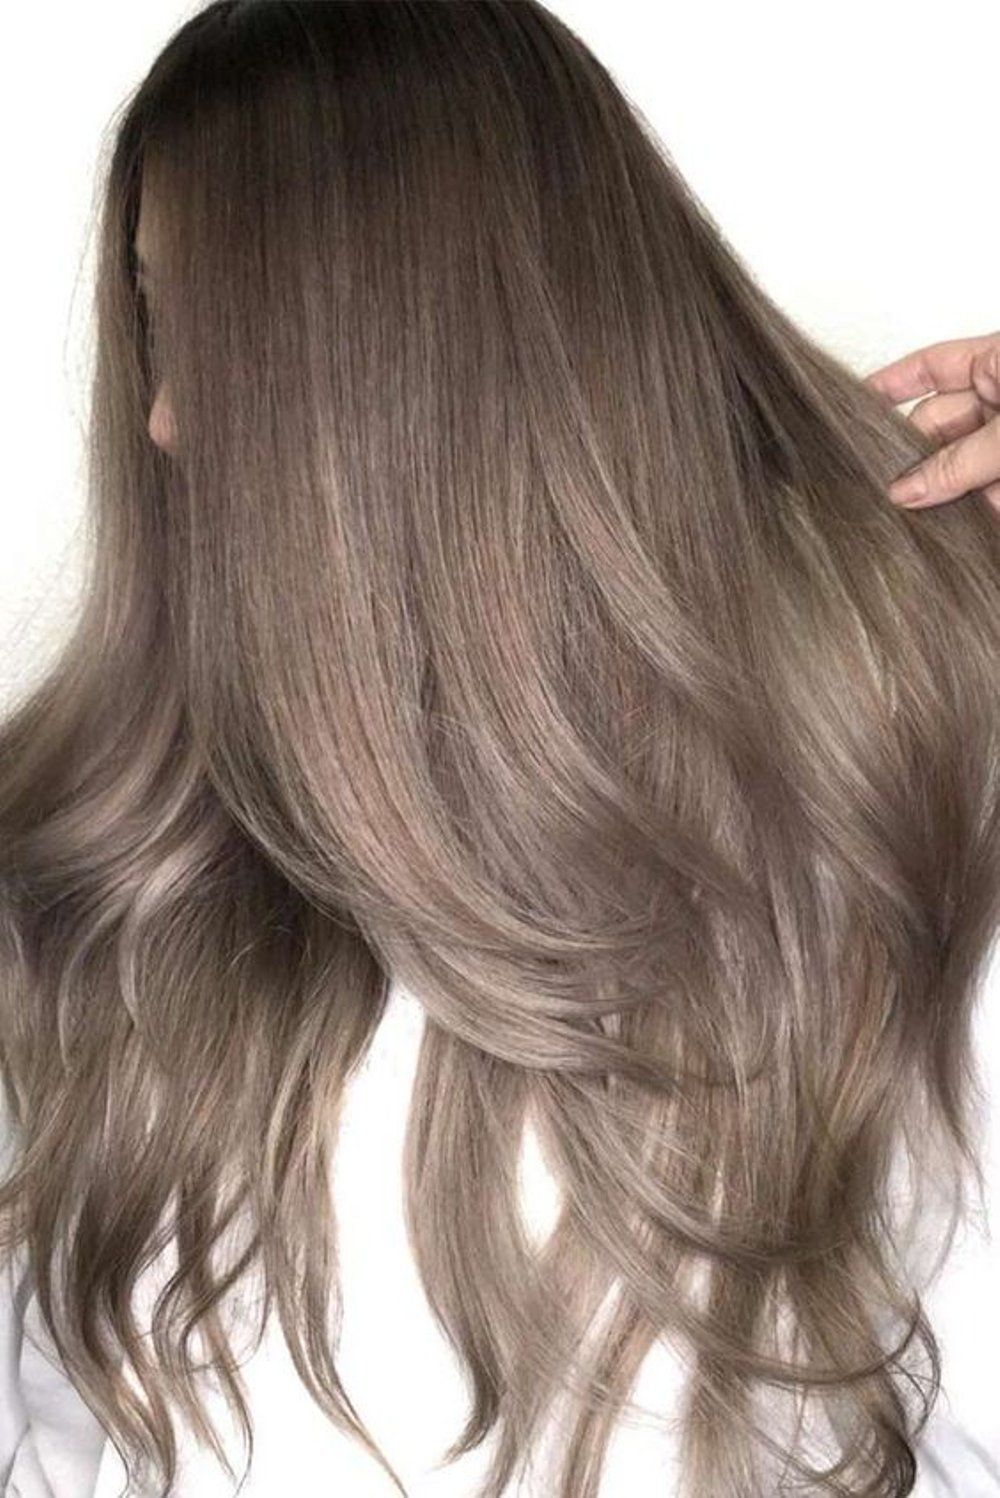 Pin By Mollie Derrick Stewart On Hair Colors Hairstyles Mostly Curly Ash Brown Hair Color Ash Hair Color Brown Hair Colors